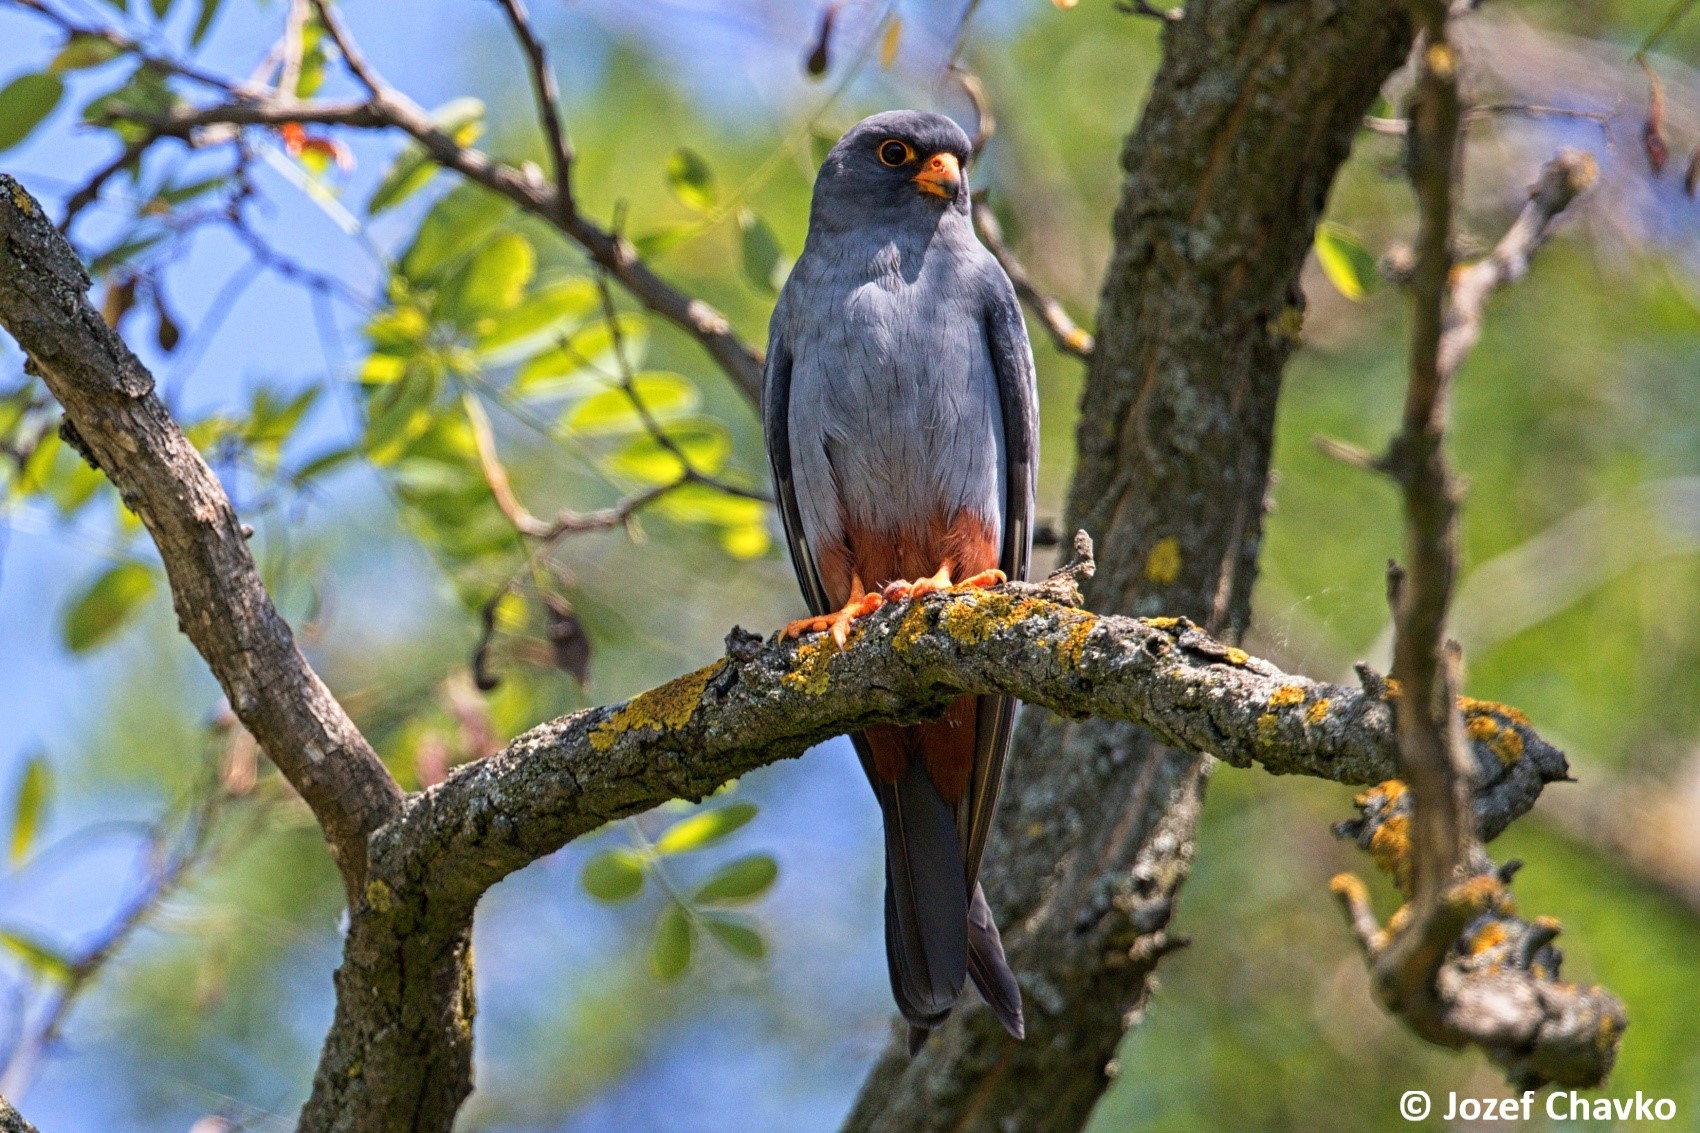 Image of The Red-footed Falcon (Falco vespertinus) sitting on the branch